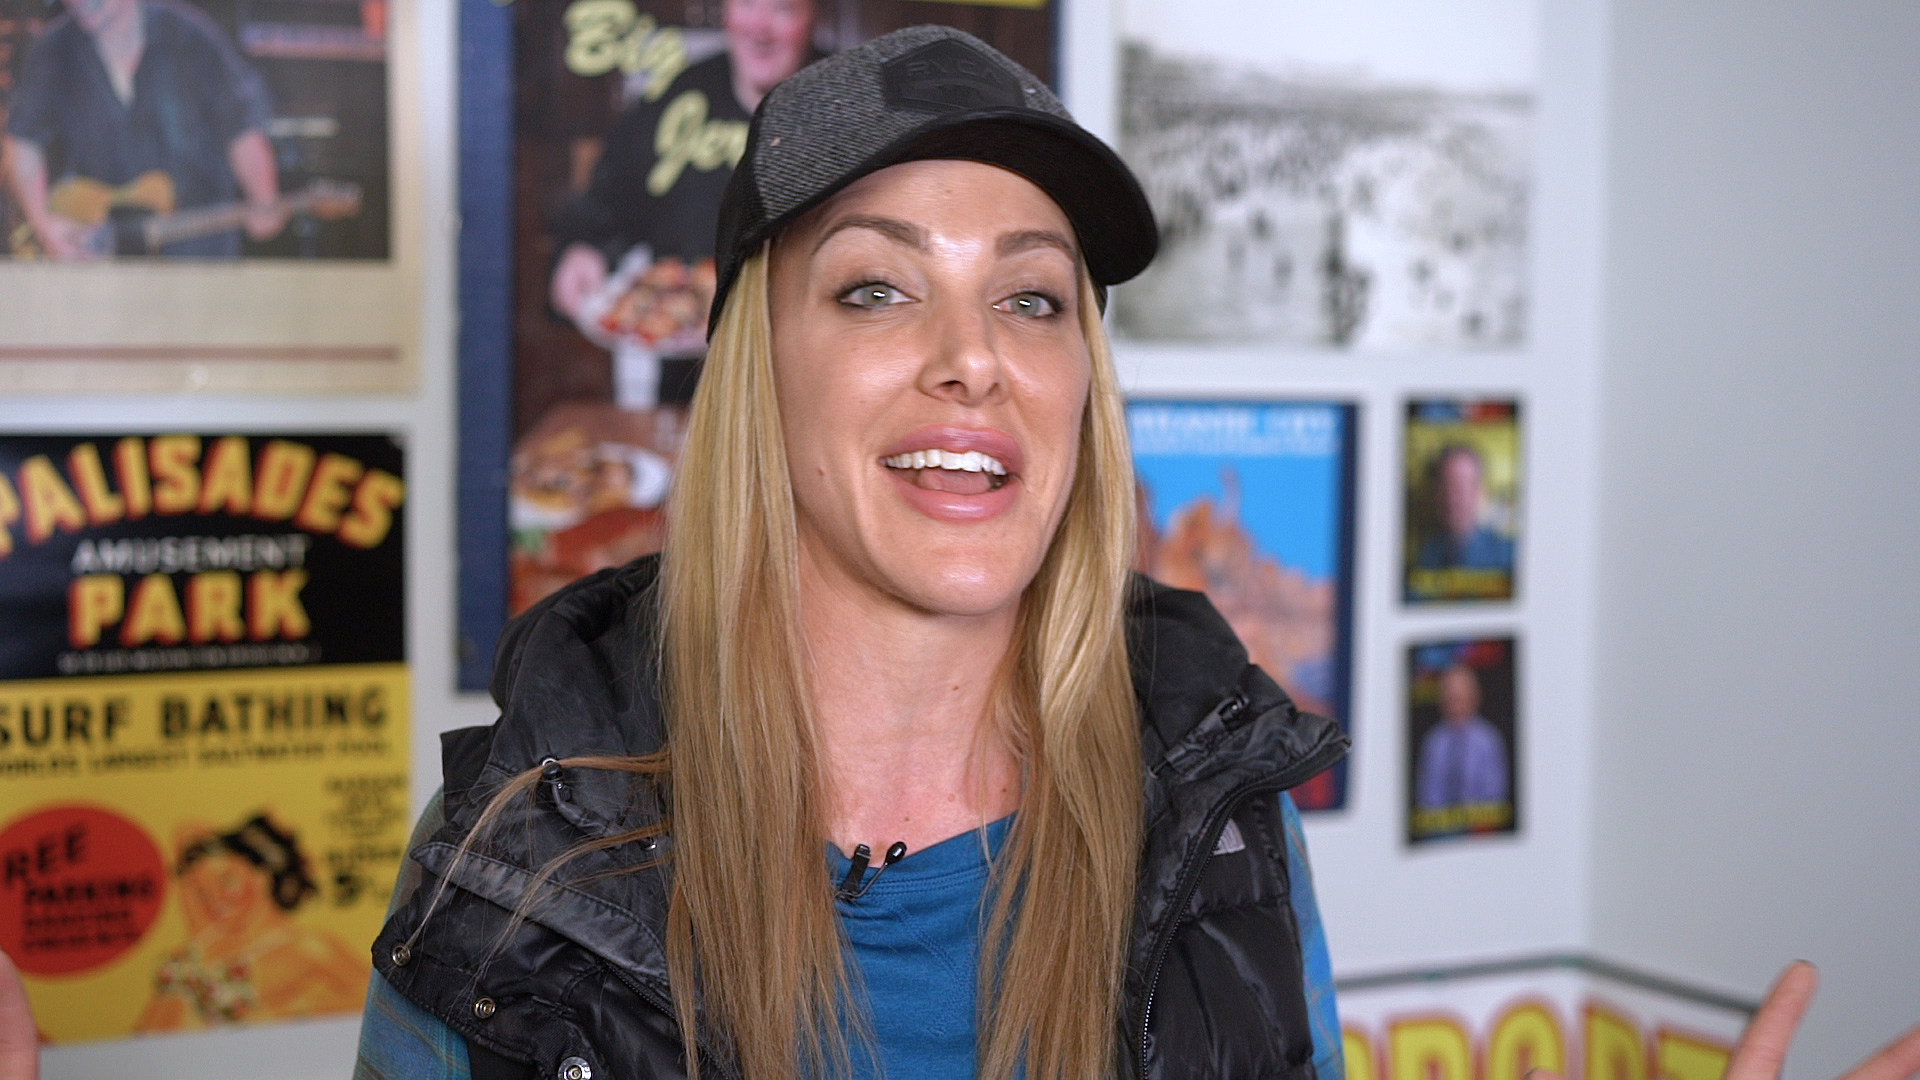 Kate Quigley Kate Quigley new pics